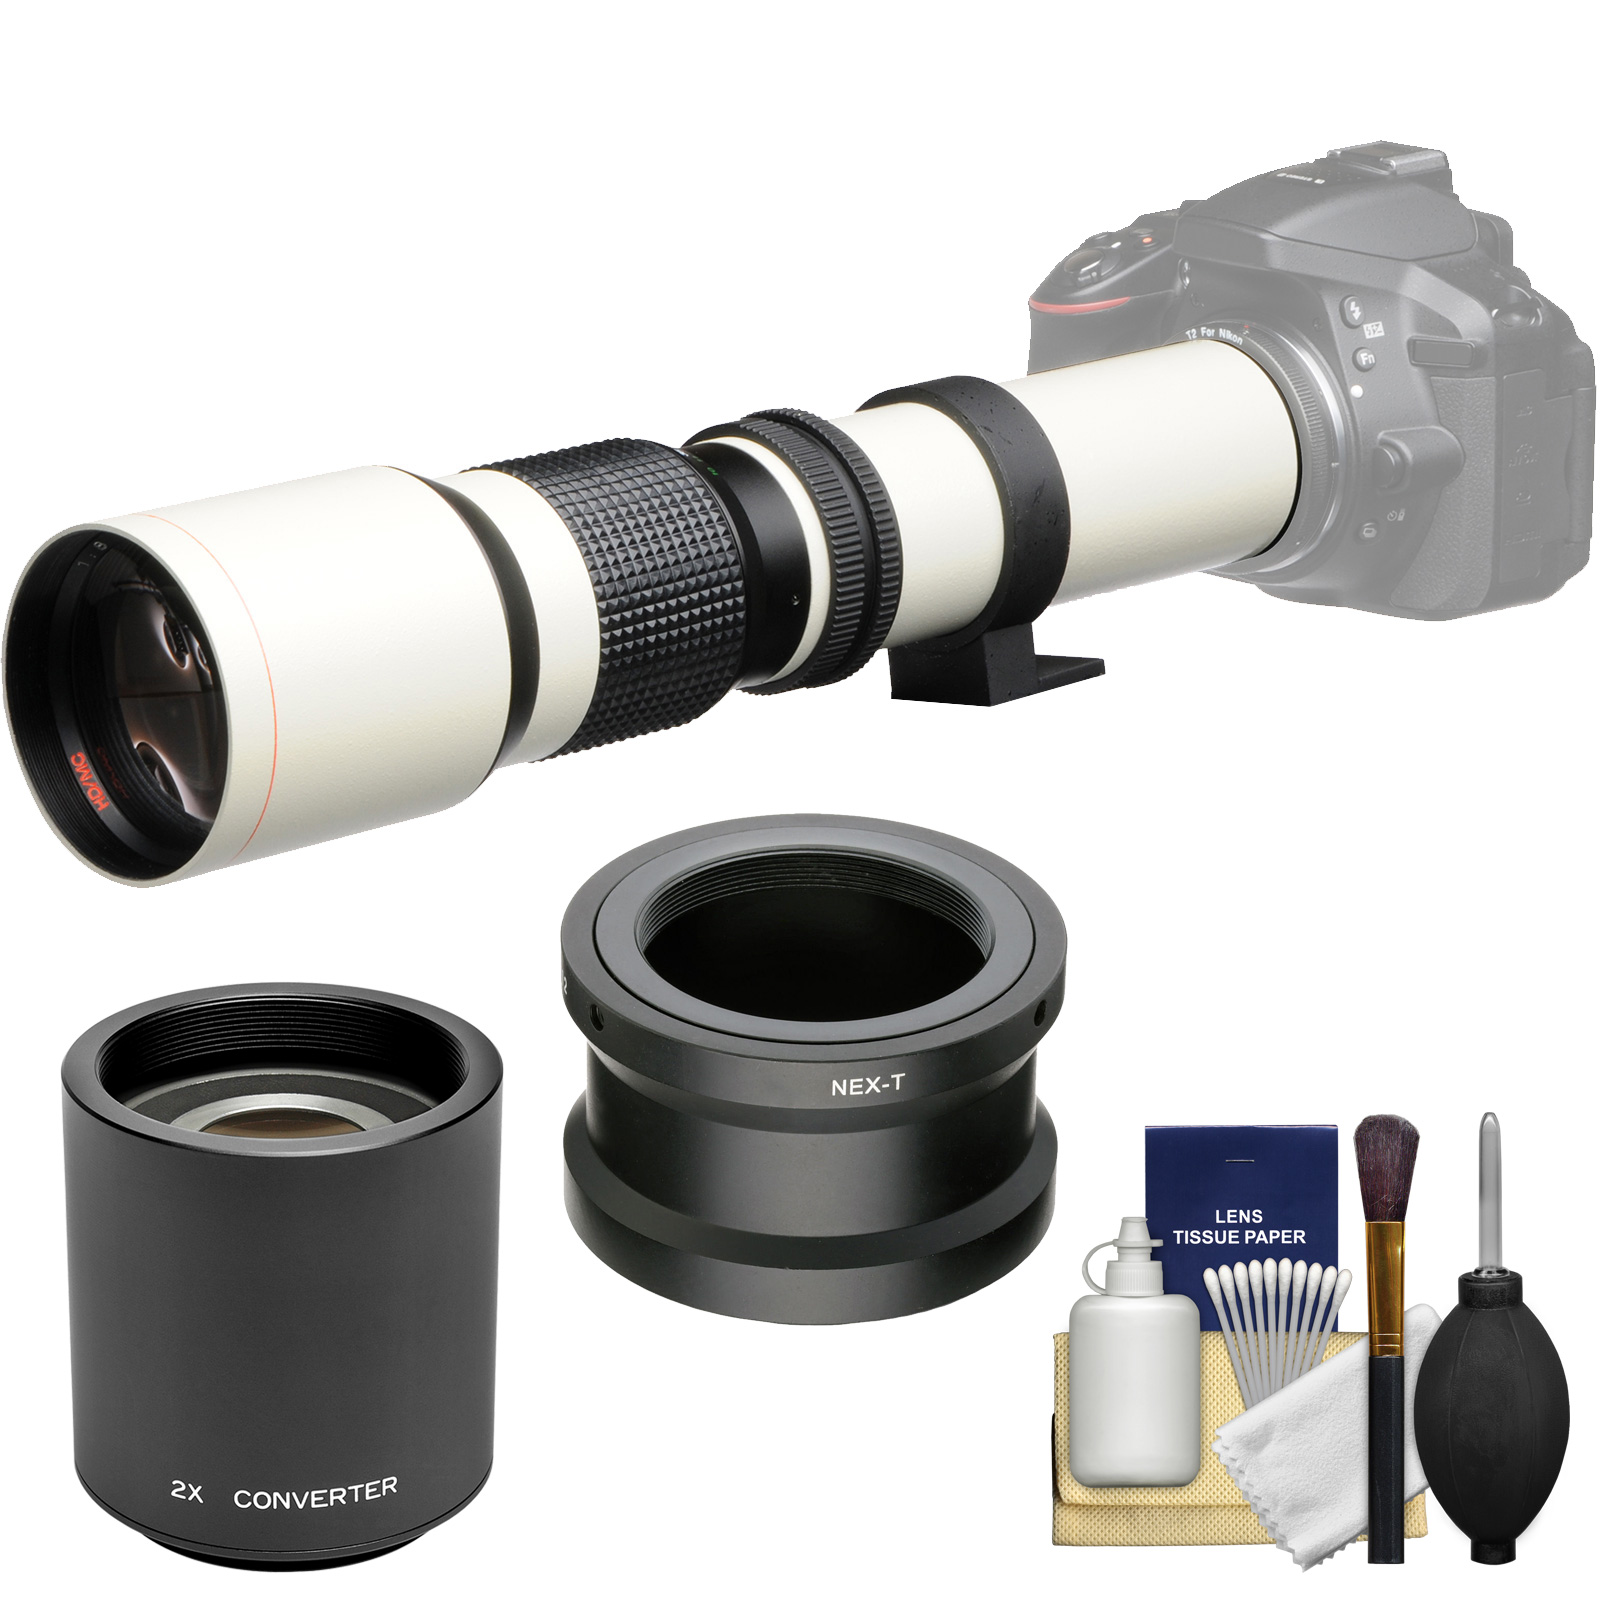 Vivitar 500mm f/8.0 Telephoto Lens (T Mount) (White) with 2x Teleconverter (=1000mm) + Accessory Kit for Sony Alpha A3000, A5000, A5100, A6000, A7, A7R, A7S E-Mount Camera